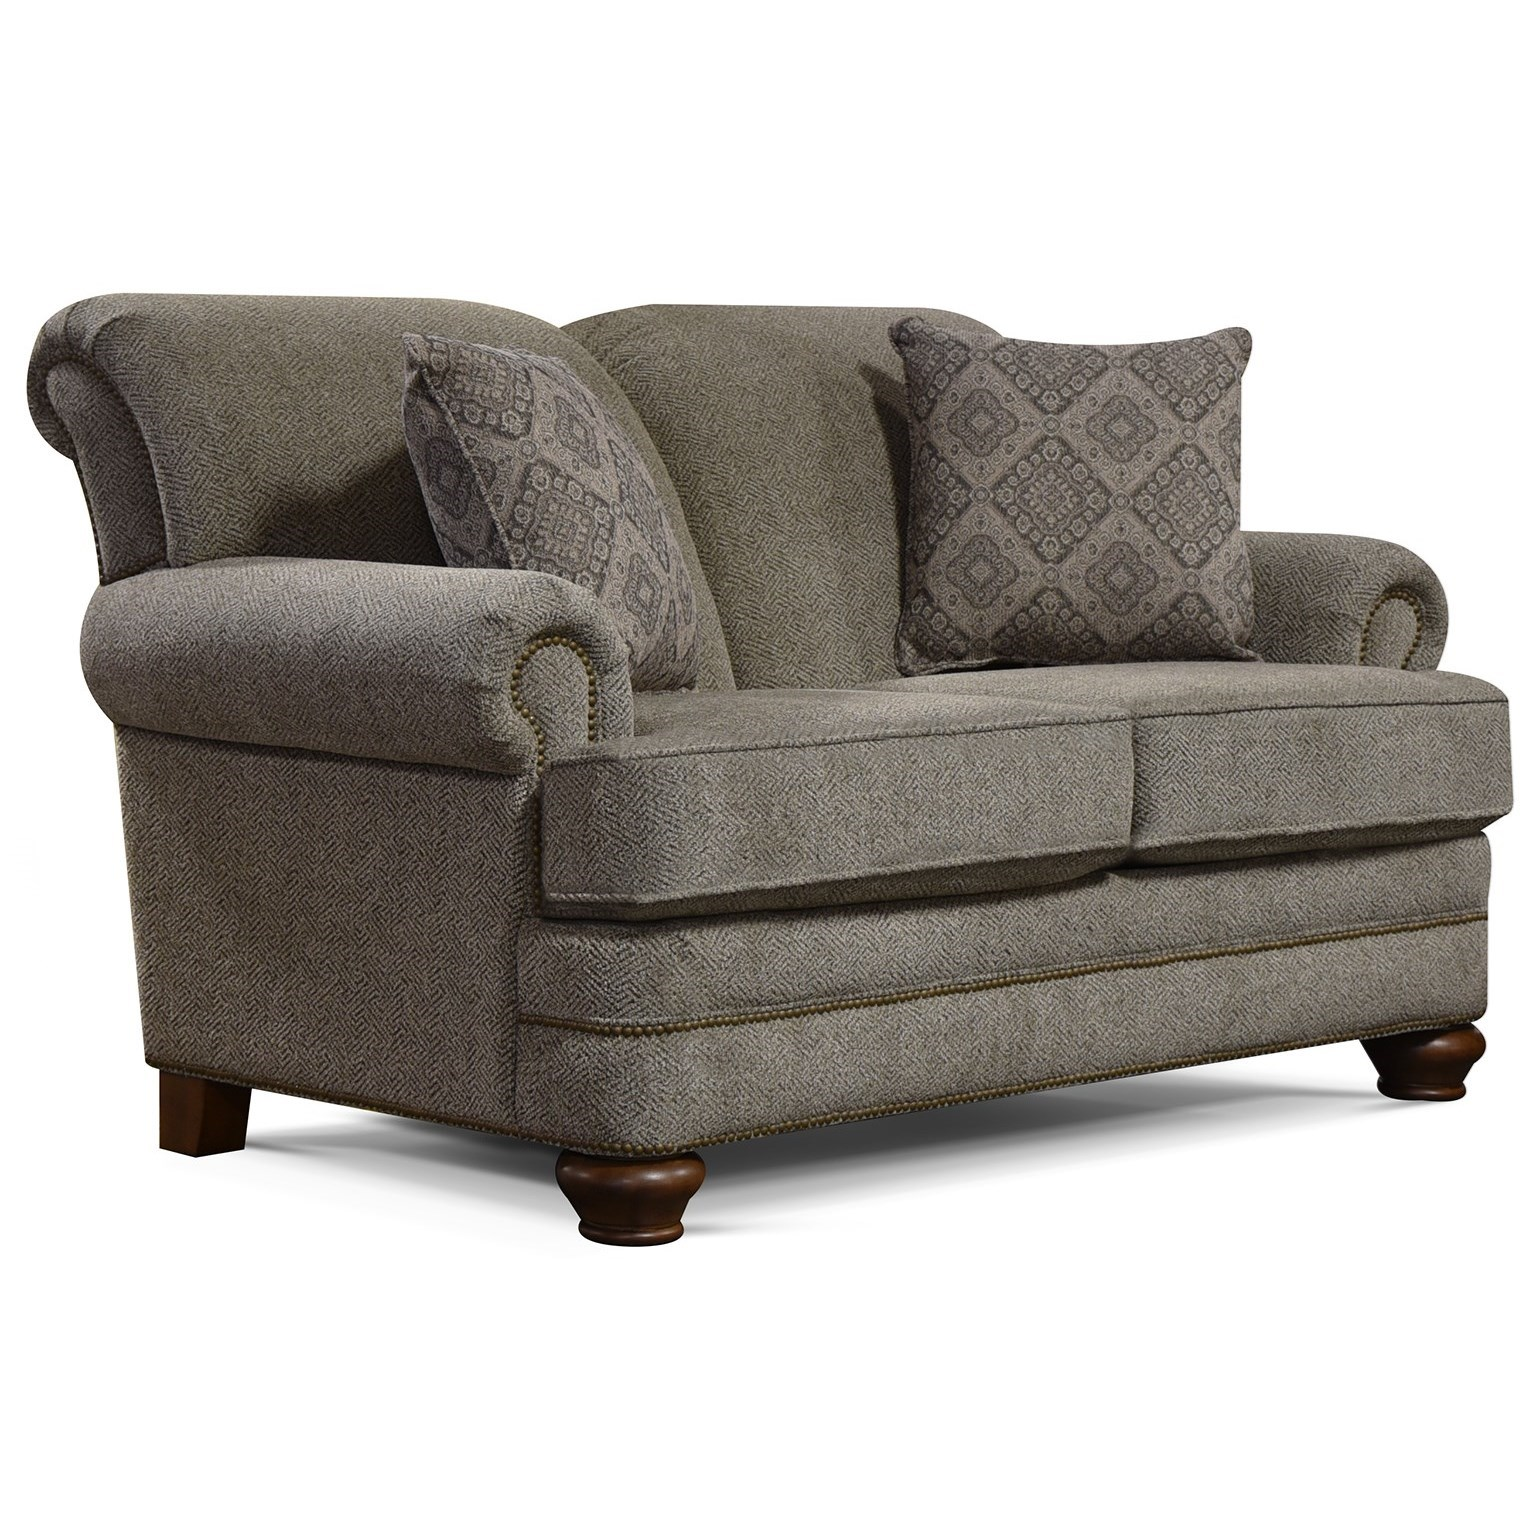 England Reed 5q06n Traditional Loveseat With Nailhead Trim Dunk Amp Bright Furniture